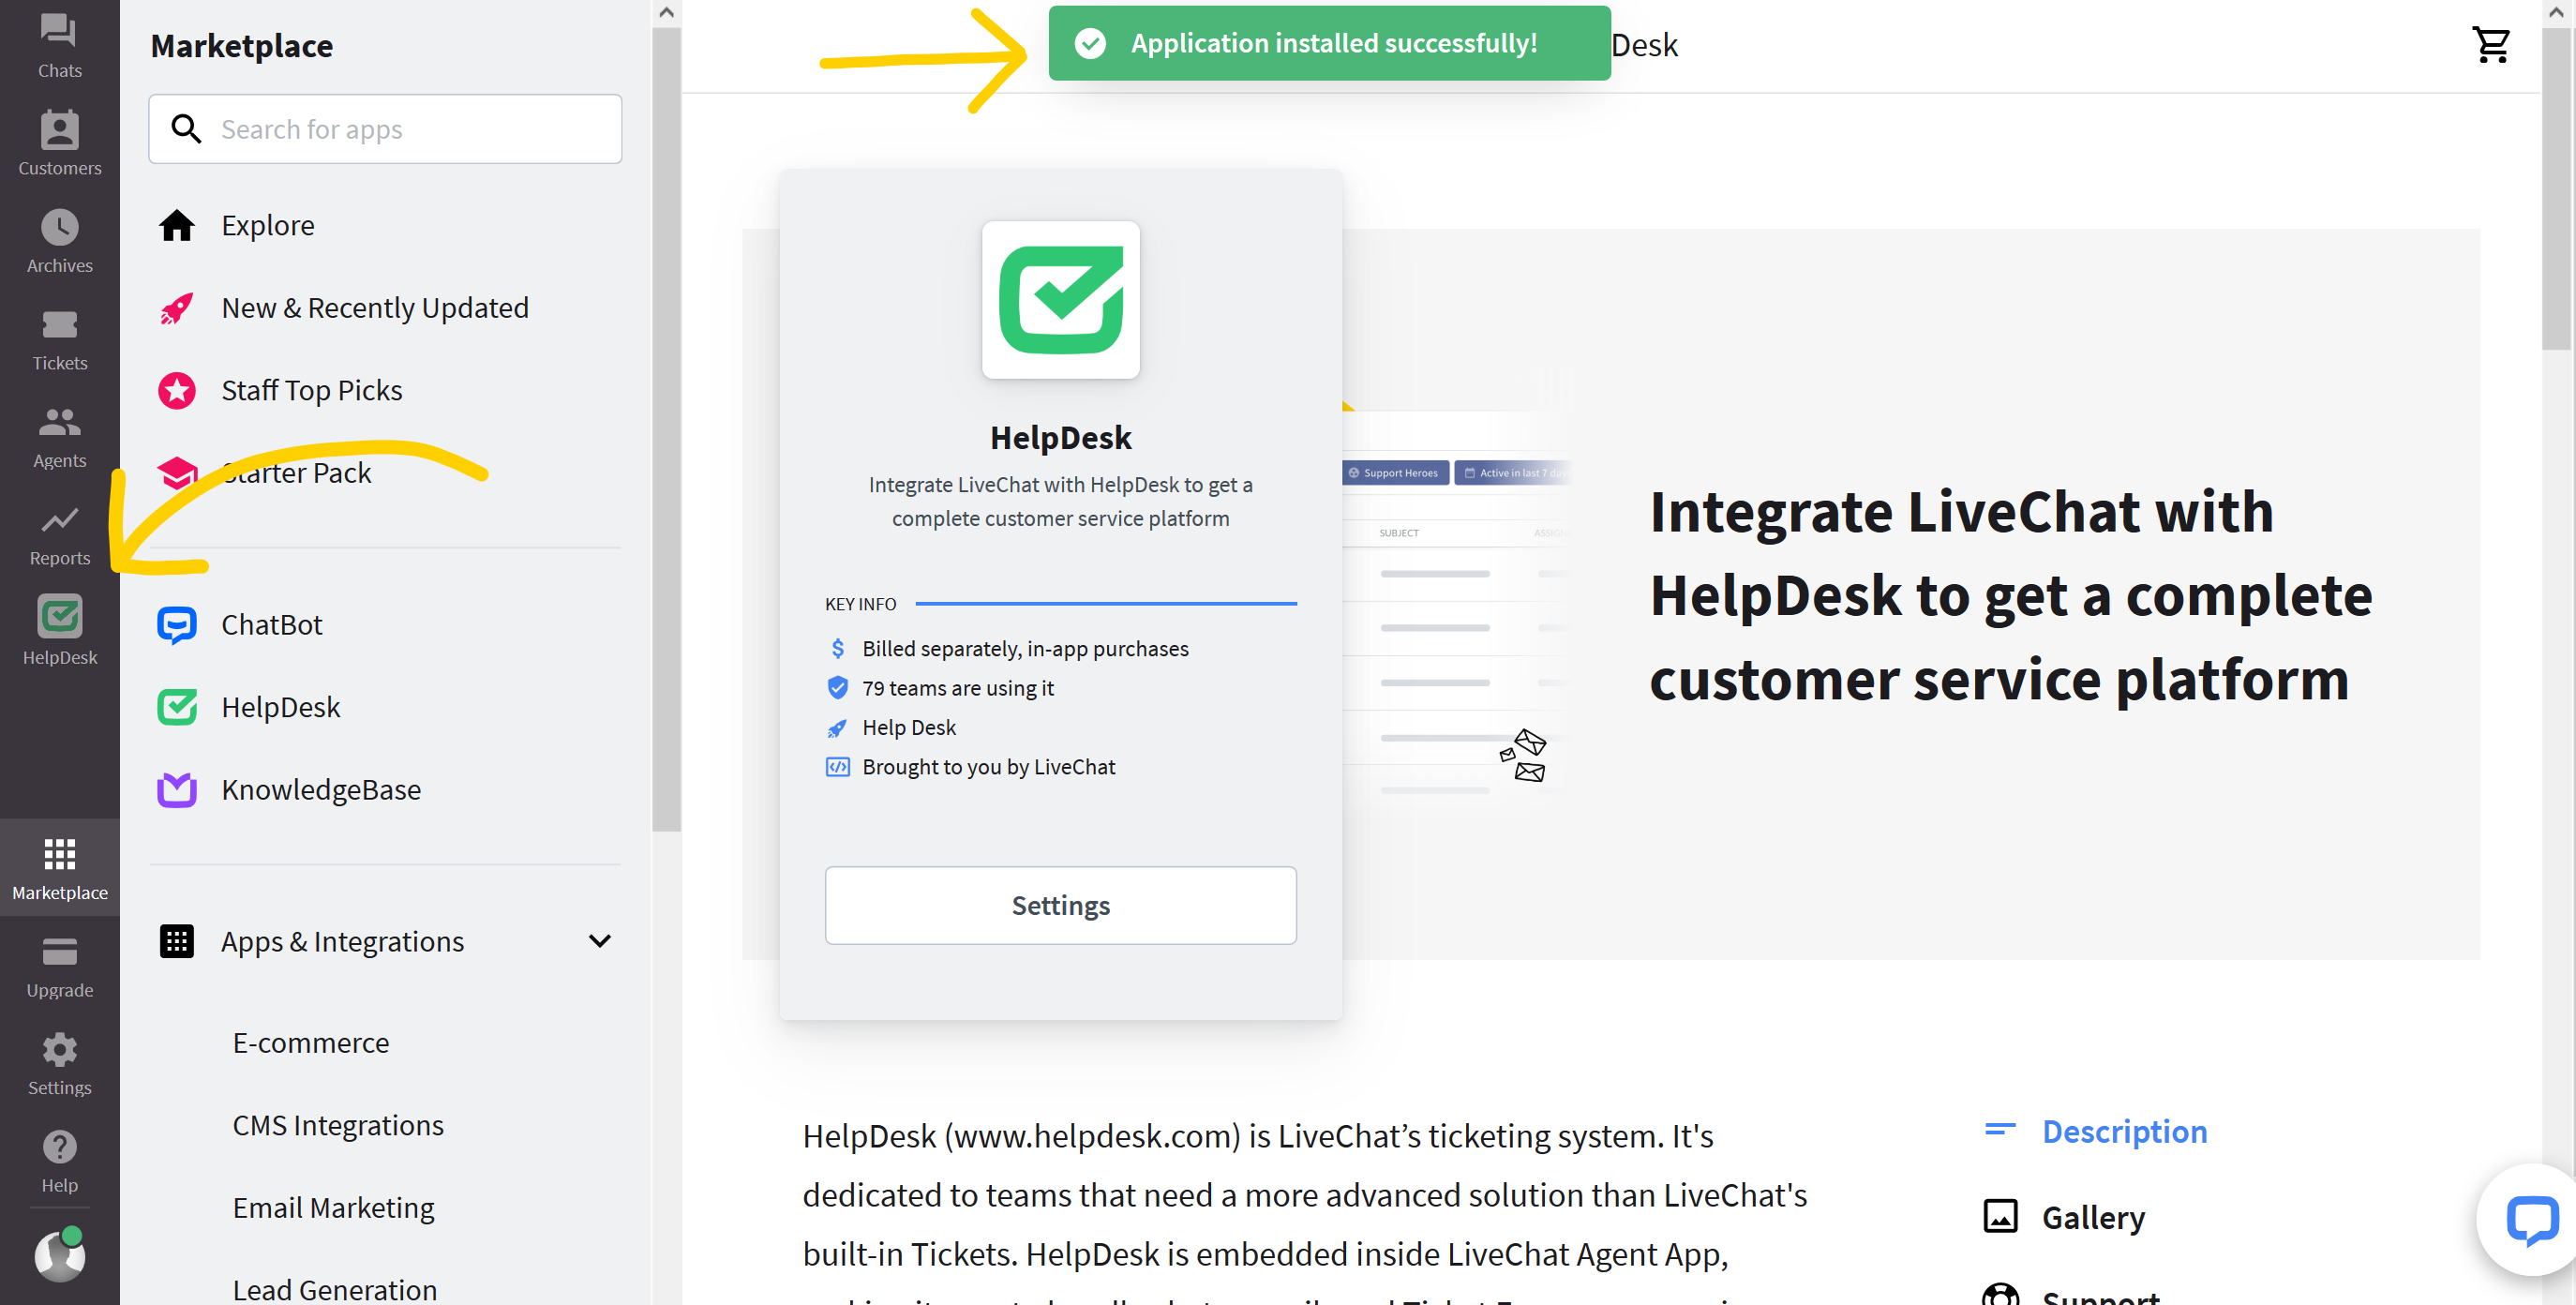 HelpDesk-LiveChat - integration successful